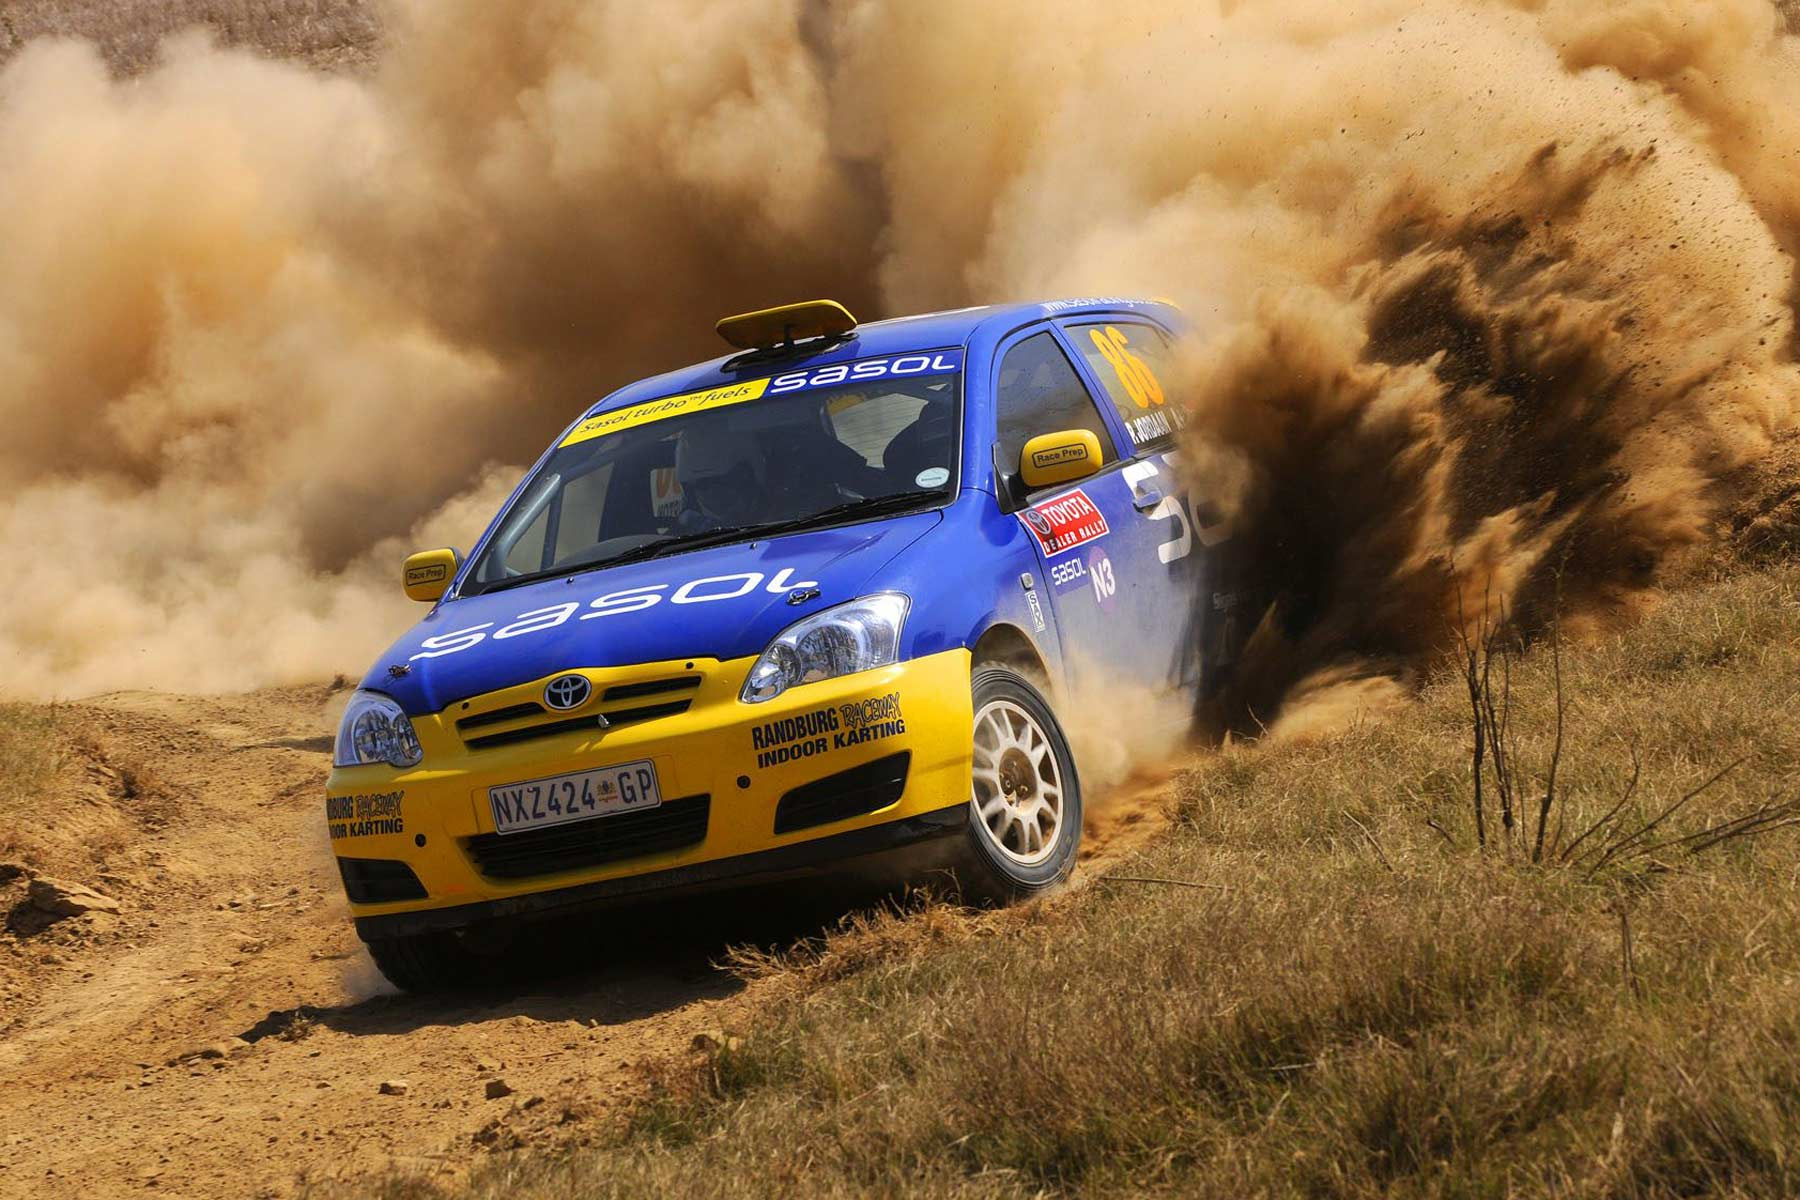 Sasol actively engages in sponsorship in both rally and track motorsports.